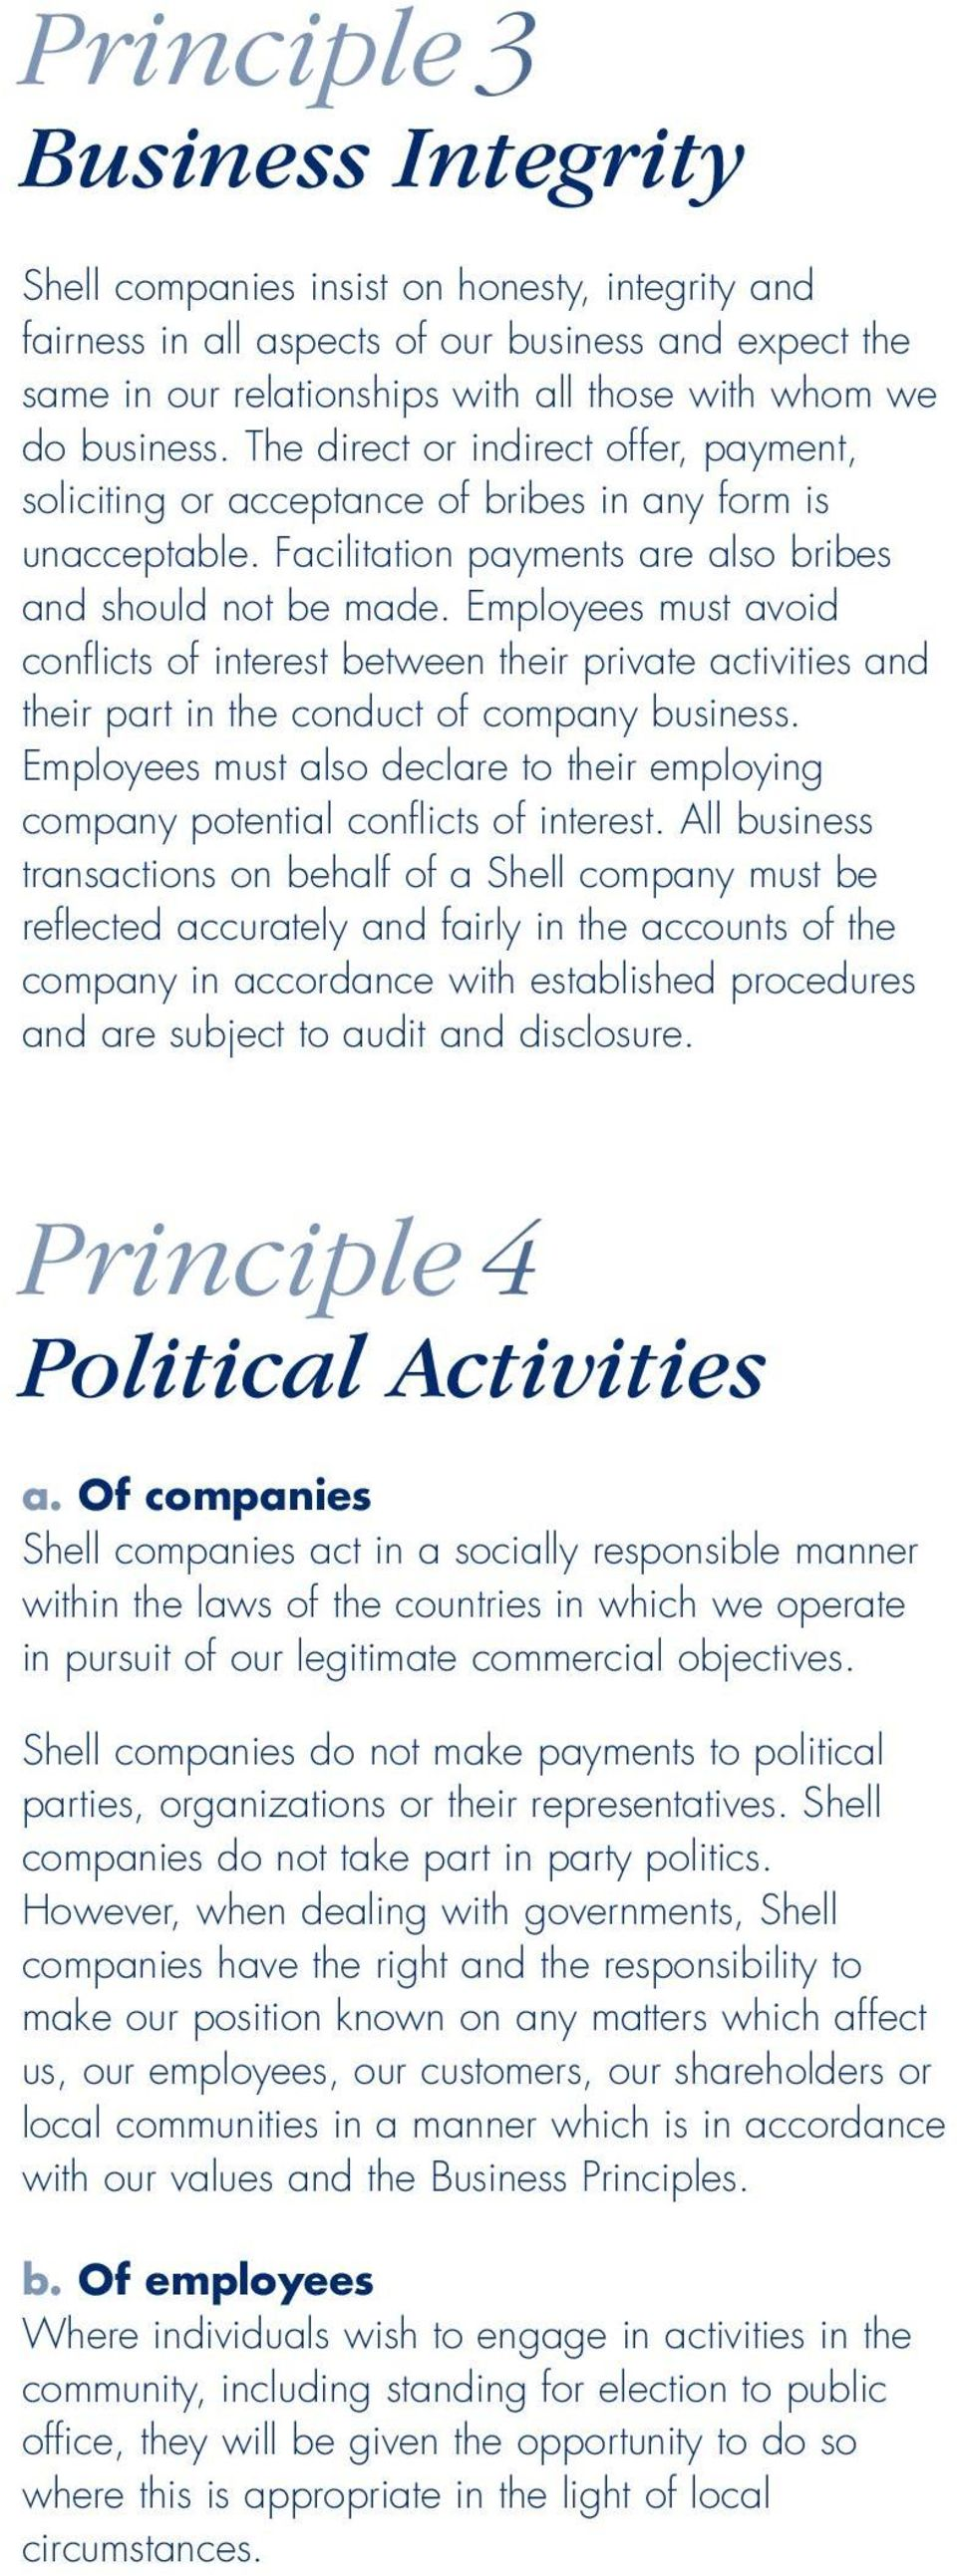 Employees must avoid conflicts of interest between their private activities and their part in the conduct of company business.